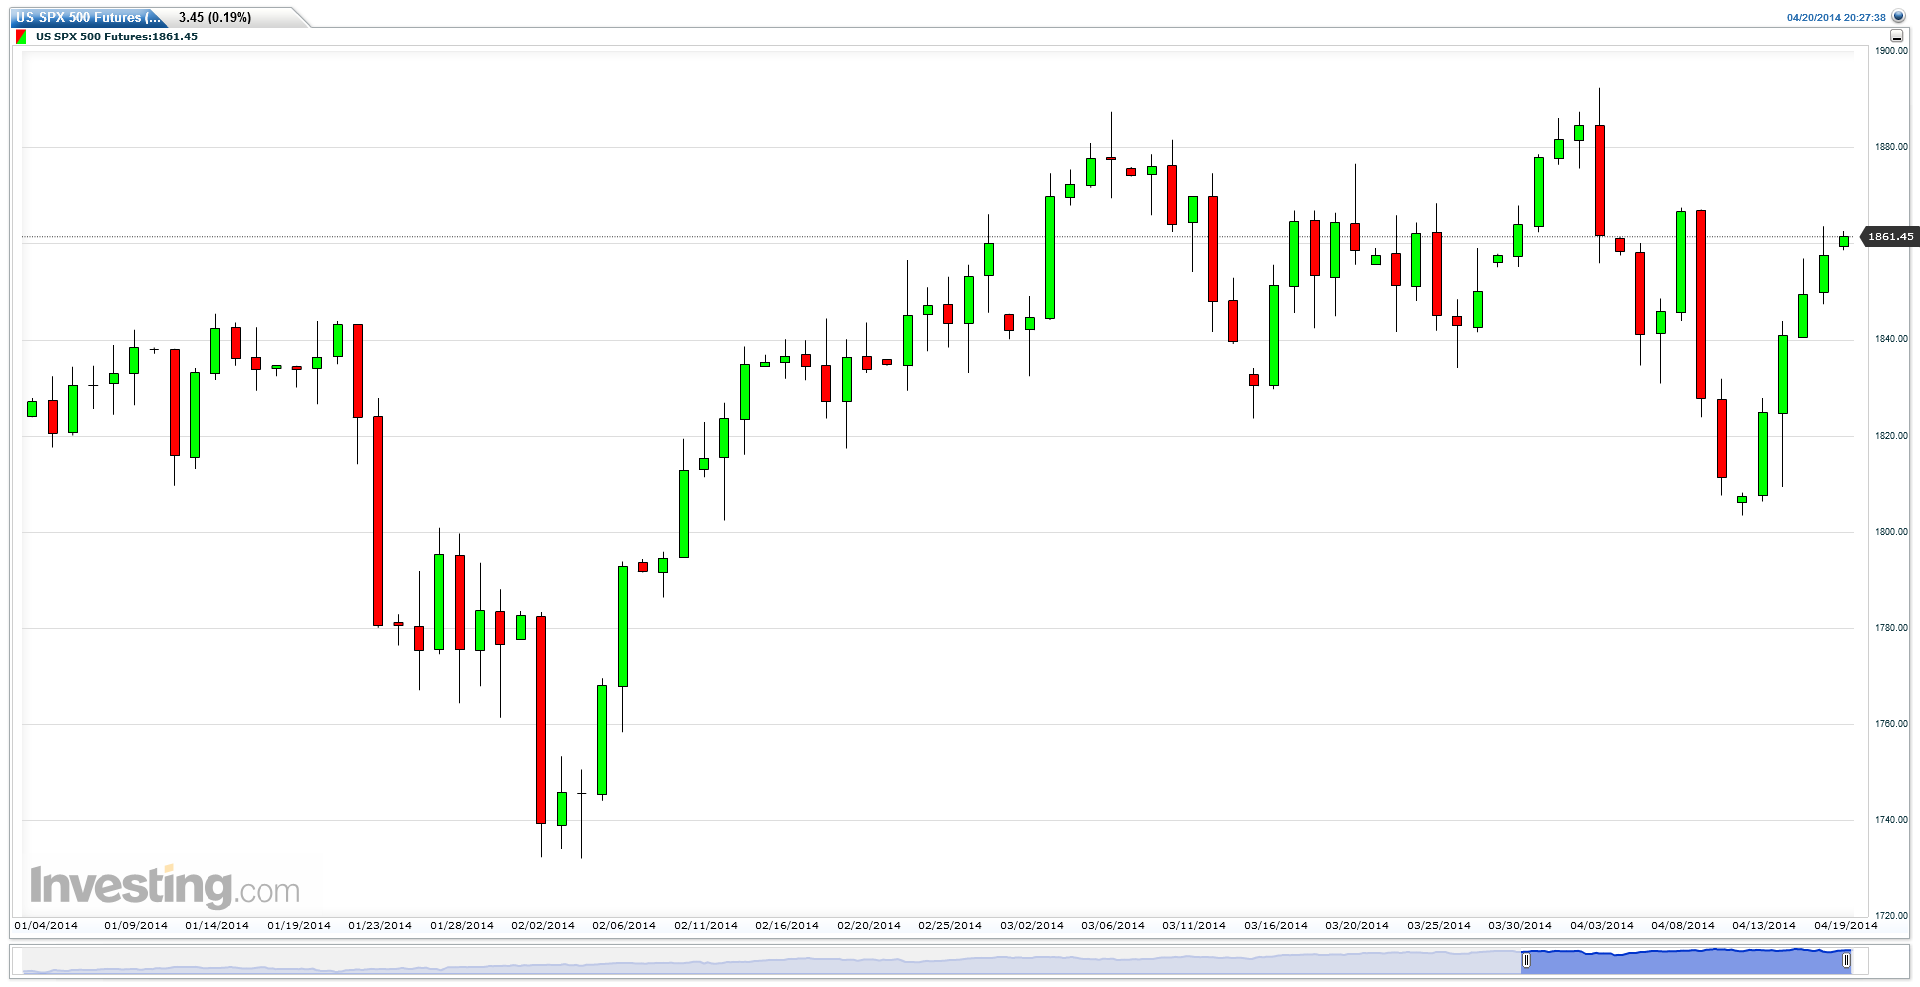 US SPX 500 Futures (Daily) 2014, 04, 20